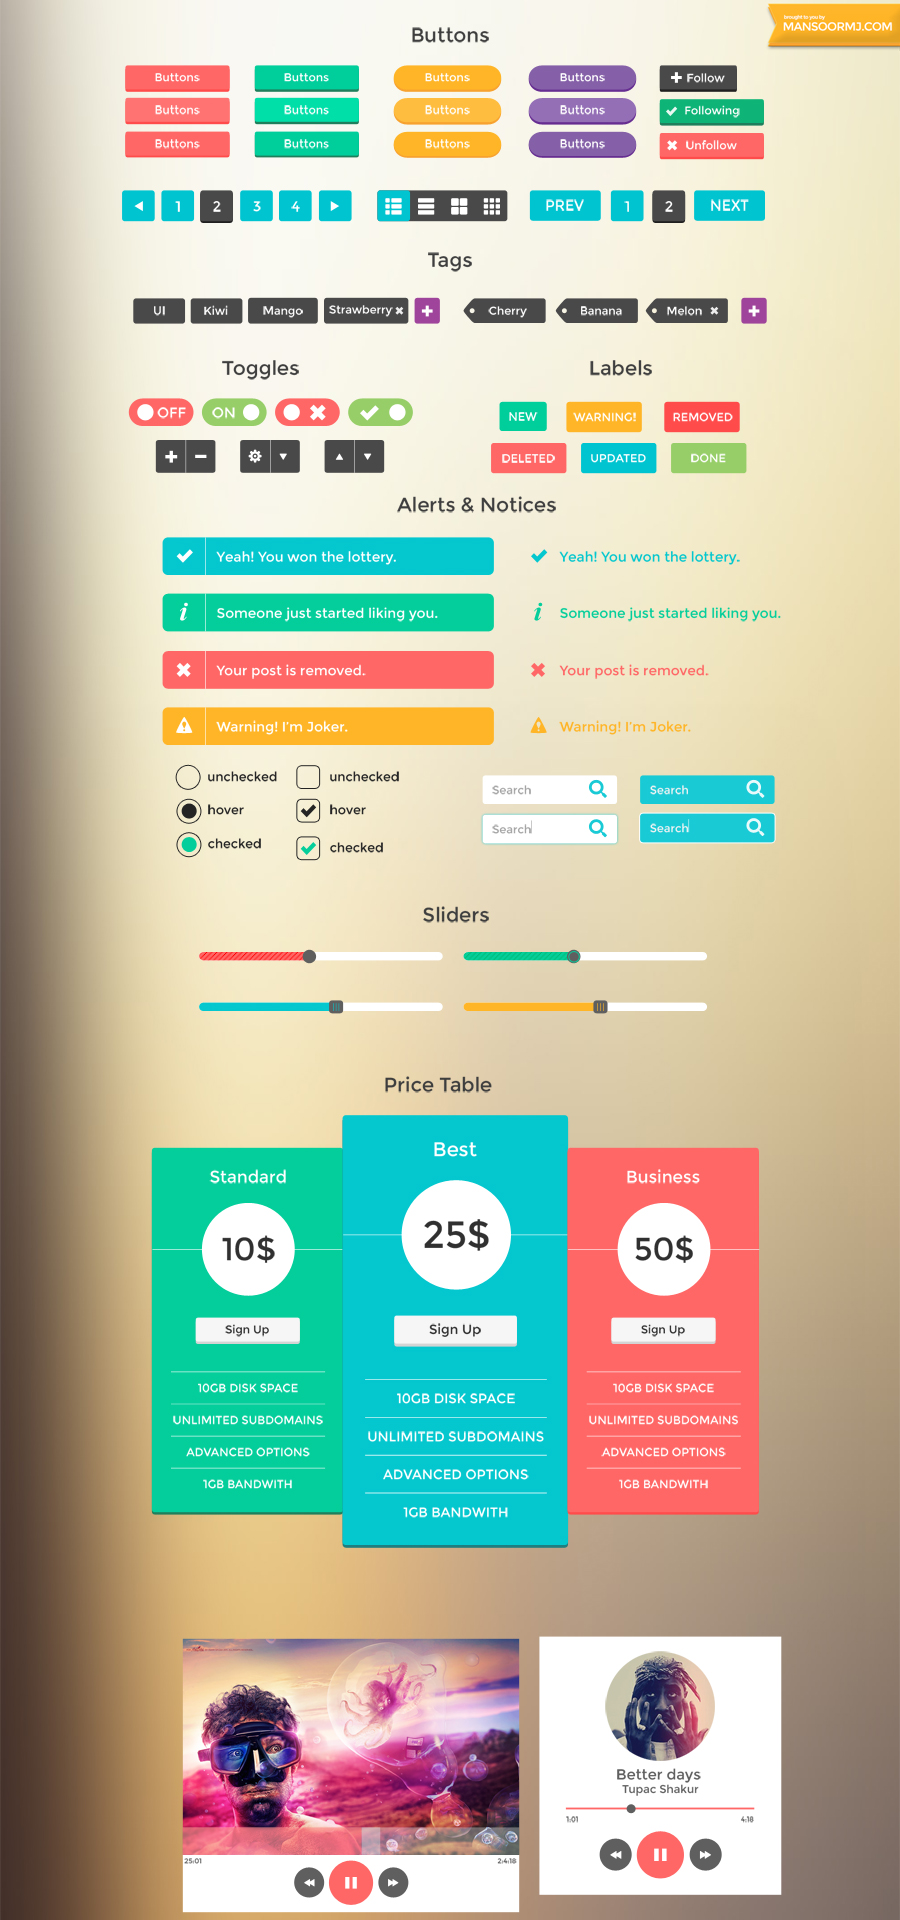 SmoothBerry - Free UI Kit